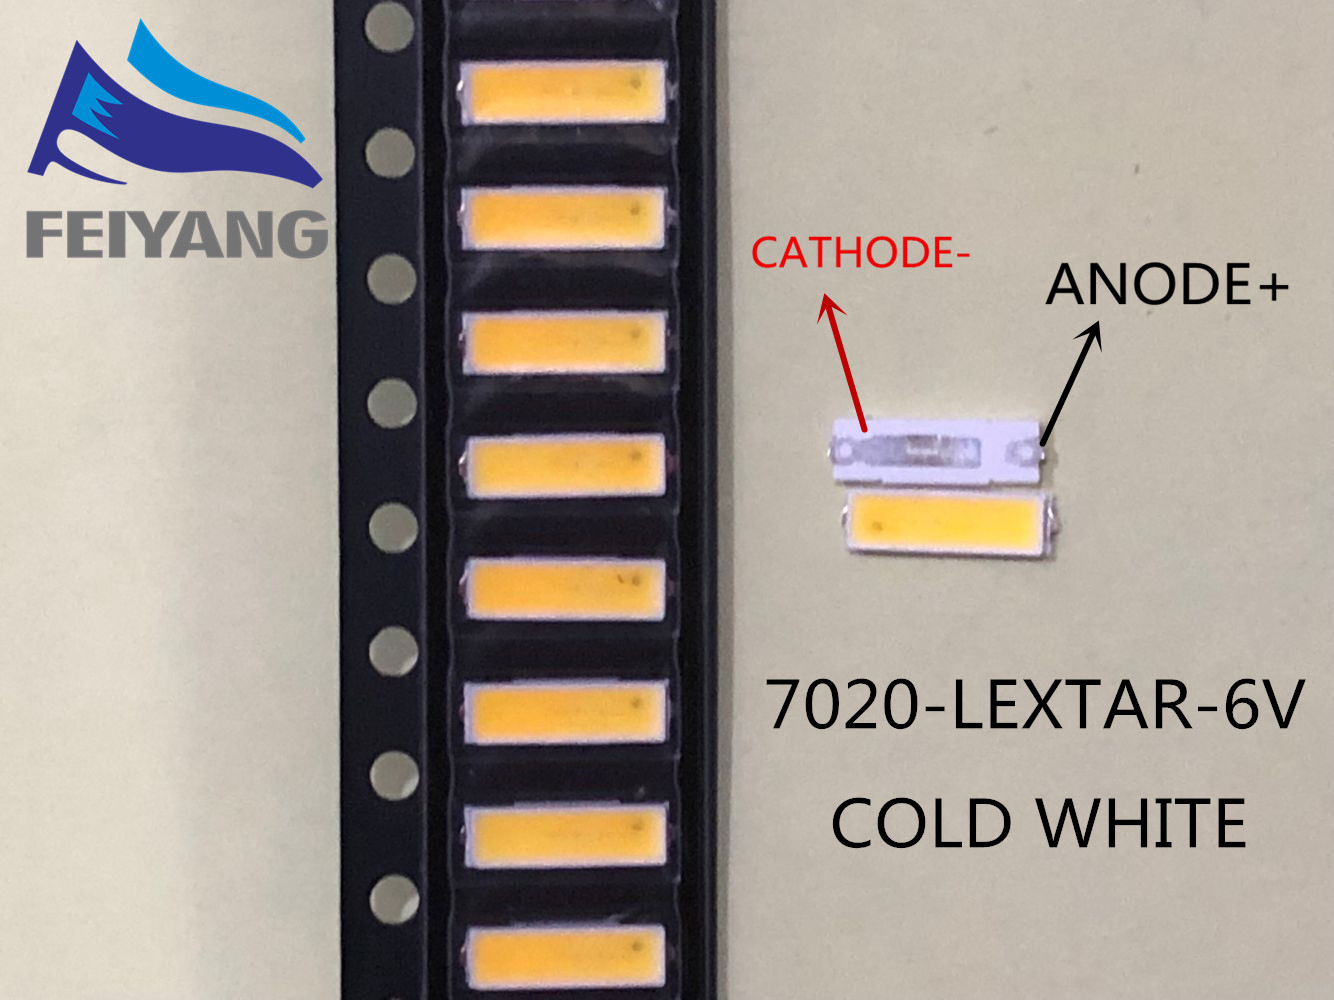 Lextar Led Backlight Mid Power Led 0.5w 7020 3v Cool White 40lm Lcd Backlight For Tv Tv Application Yet Not Vulgar Diodes Active Components